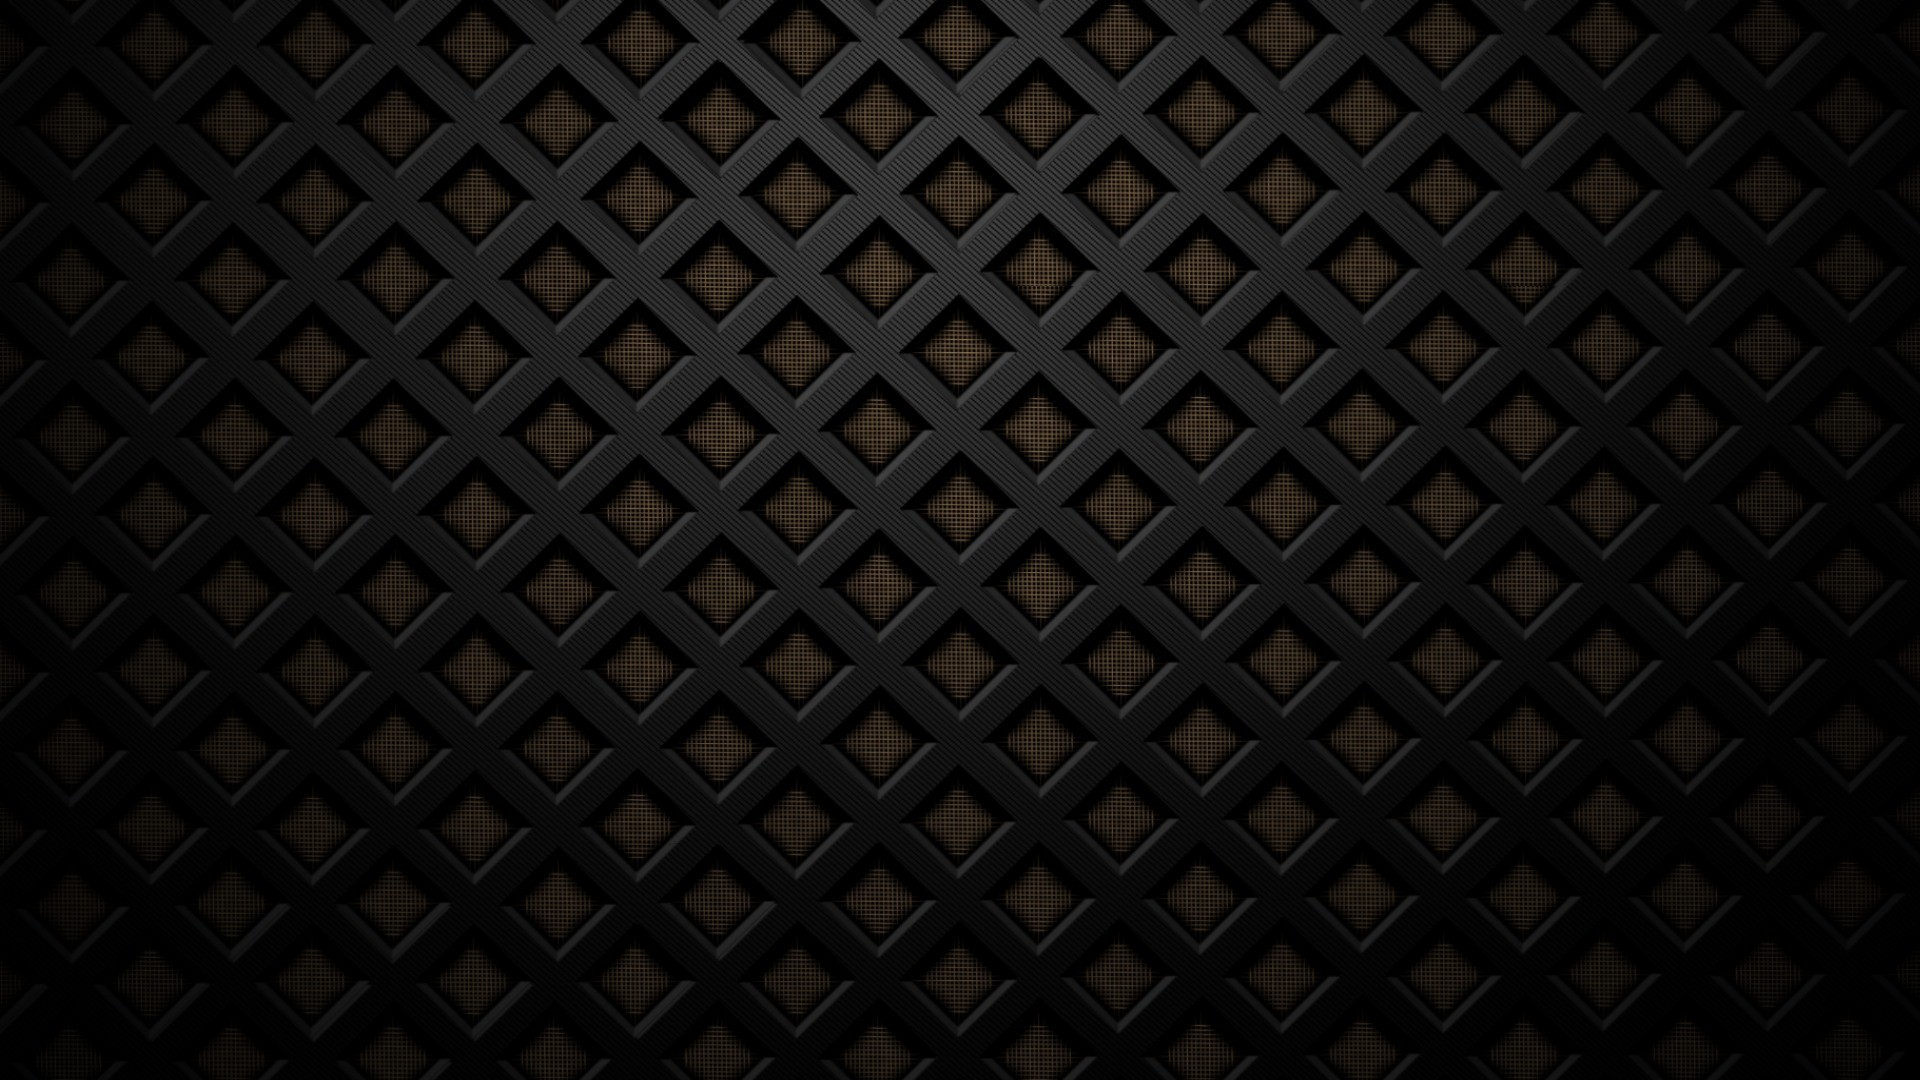 Black-Texture-Wallpapers-Pc.jpg (1920×1080) | Textures for Edits |  Pinterest | Wallpaper, Black wallpaper and 3d wallpaper